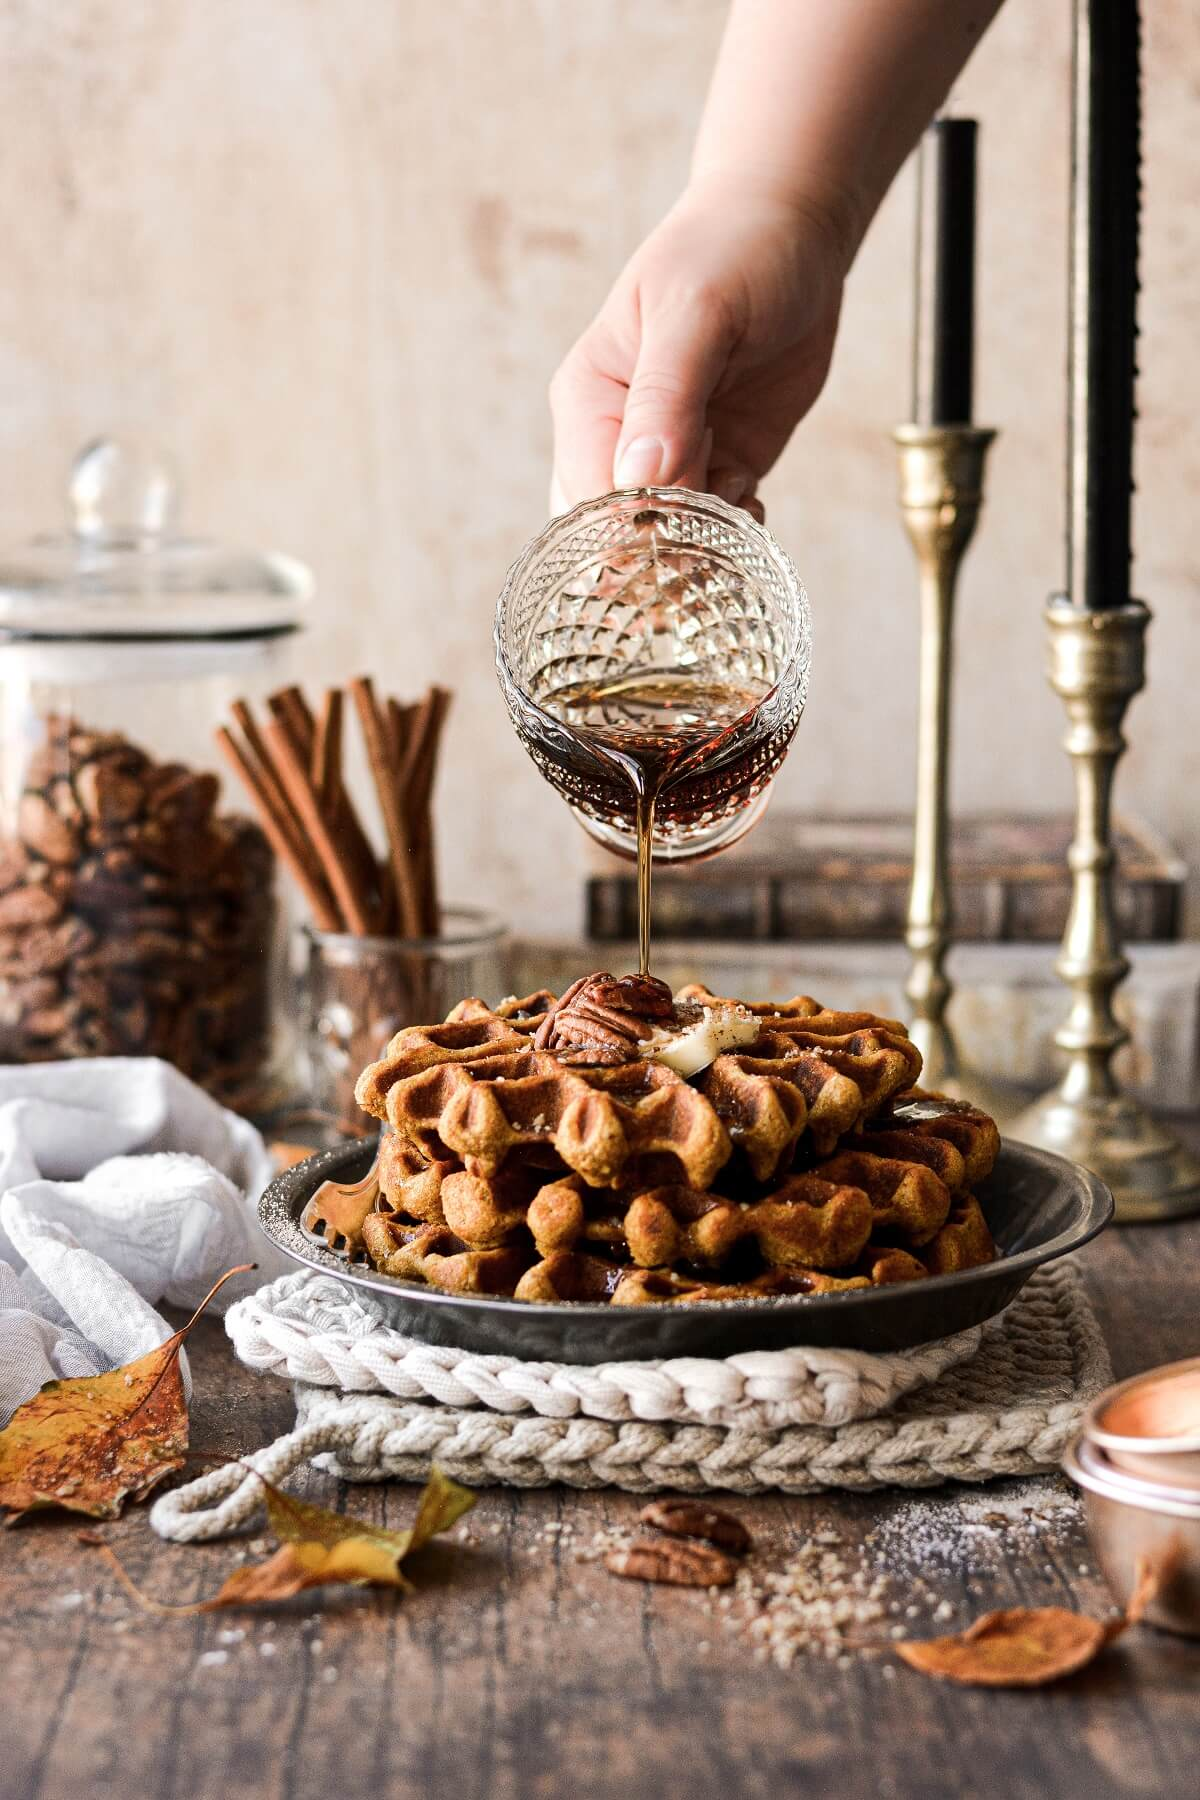 Maple syrup pouring from a glass pitcher onto a stack of pumpkin pecan waffles.